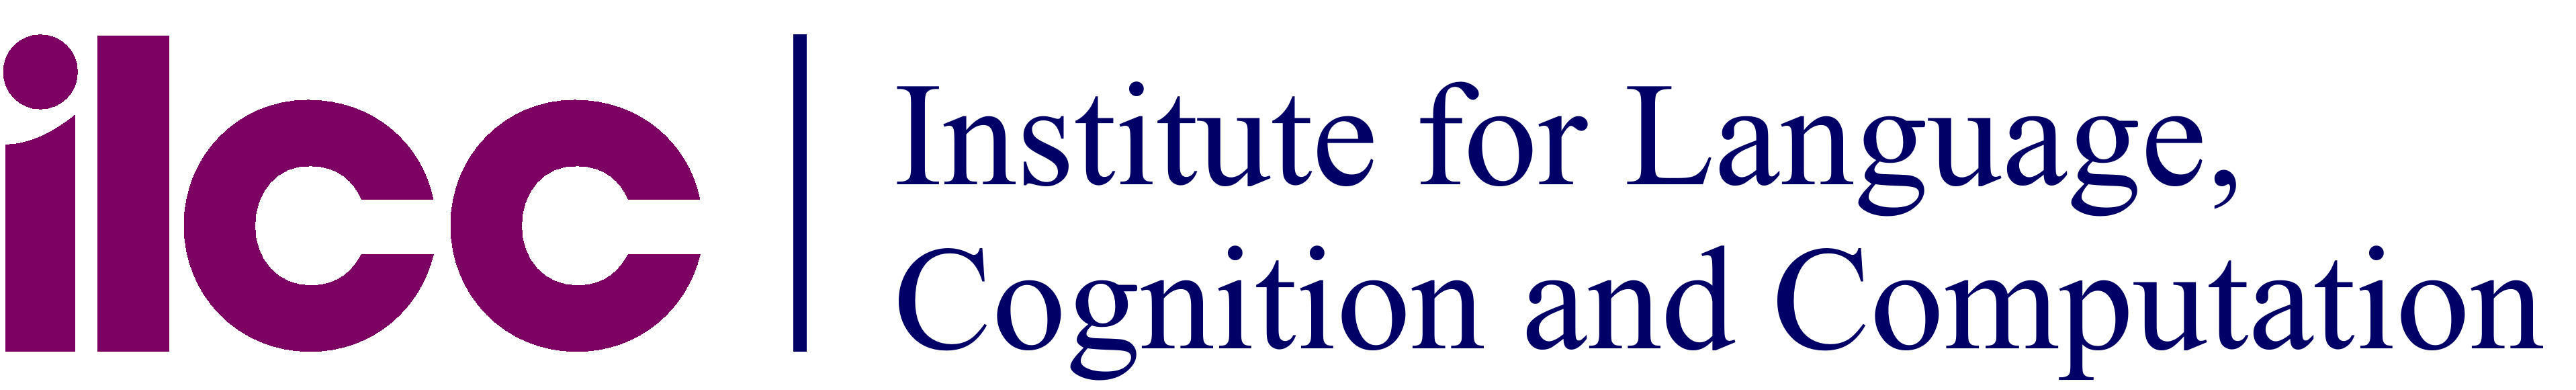 Institute for Languages, Cognition and Computation